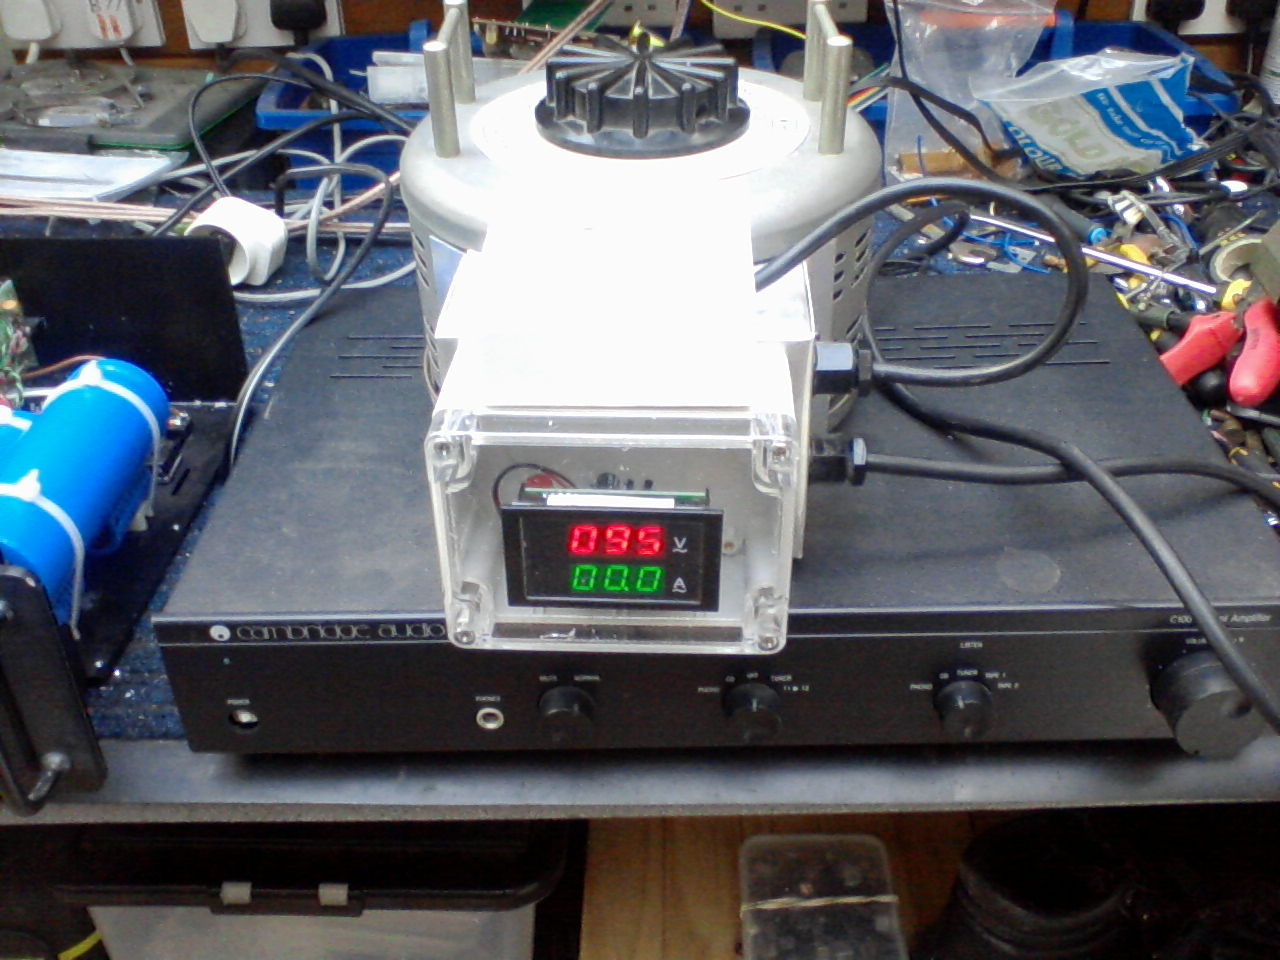 Modifications to the Variac